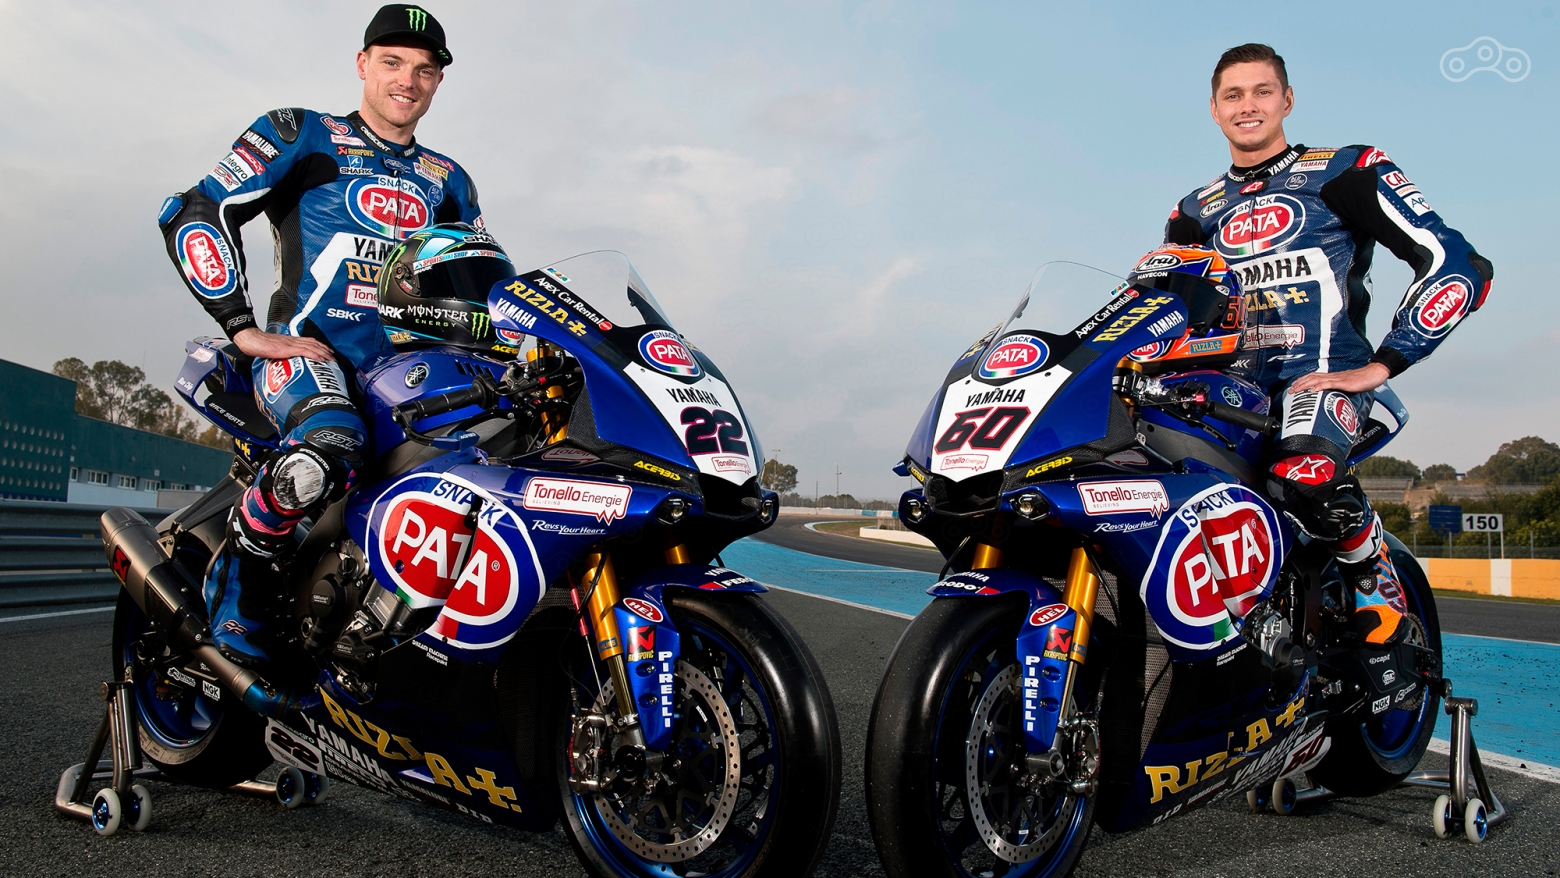 Команда Pata Yamaha World Superbike: Алекс Лауэс и Майкл Ван Дер Марк